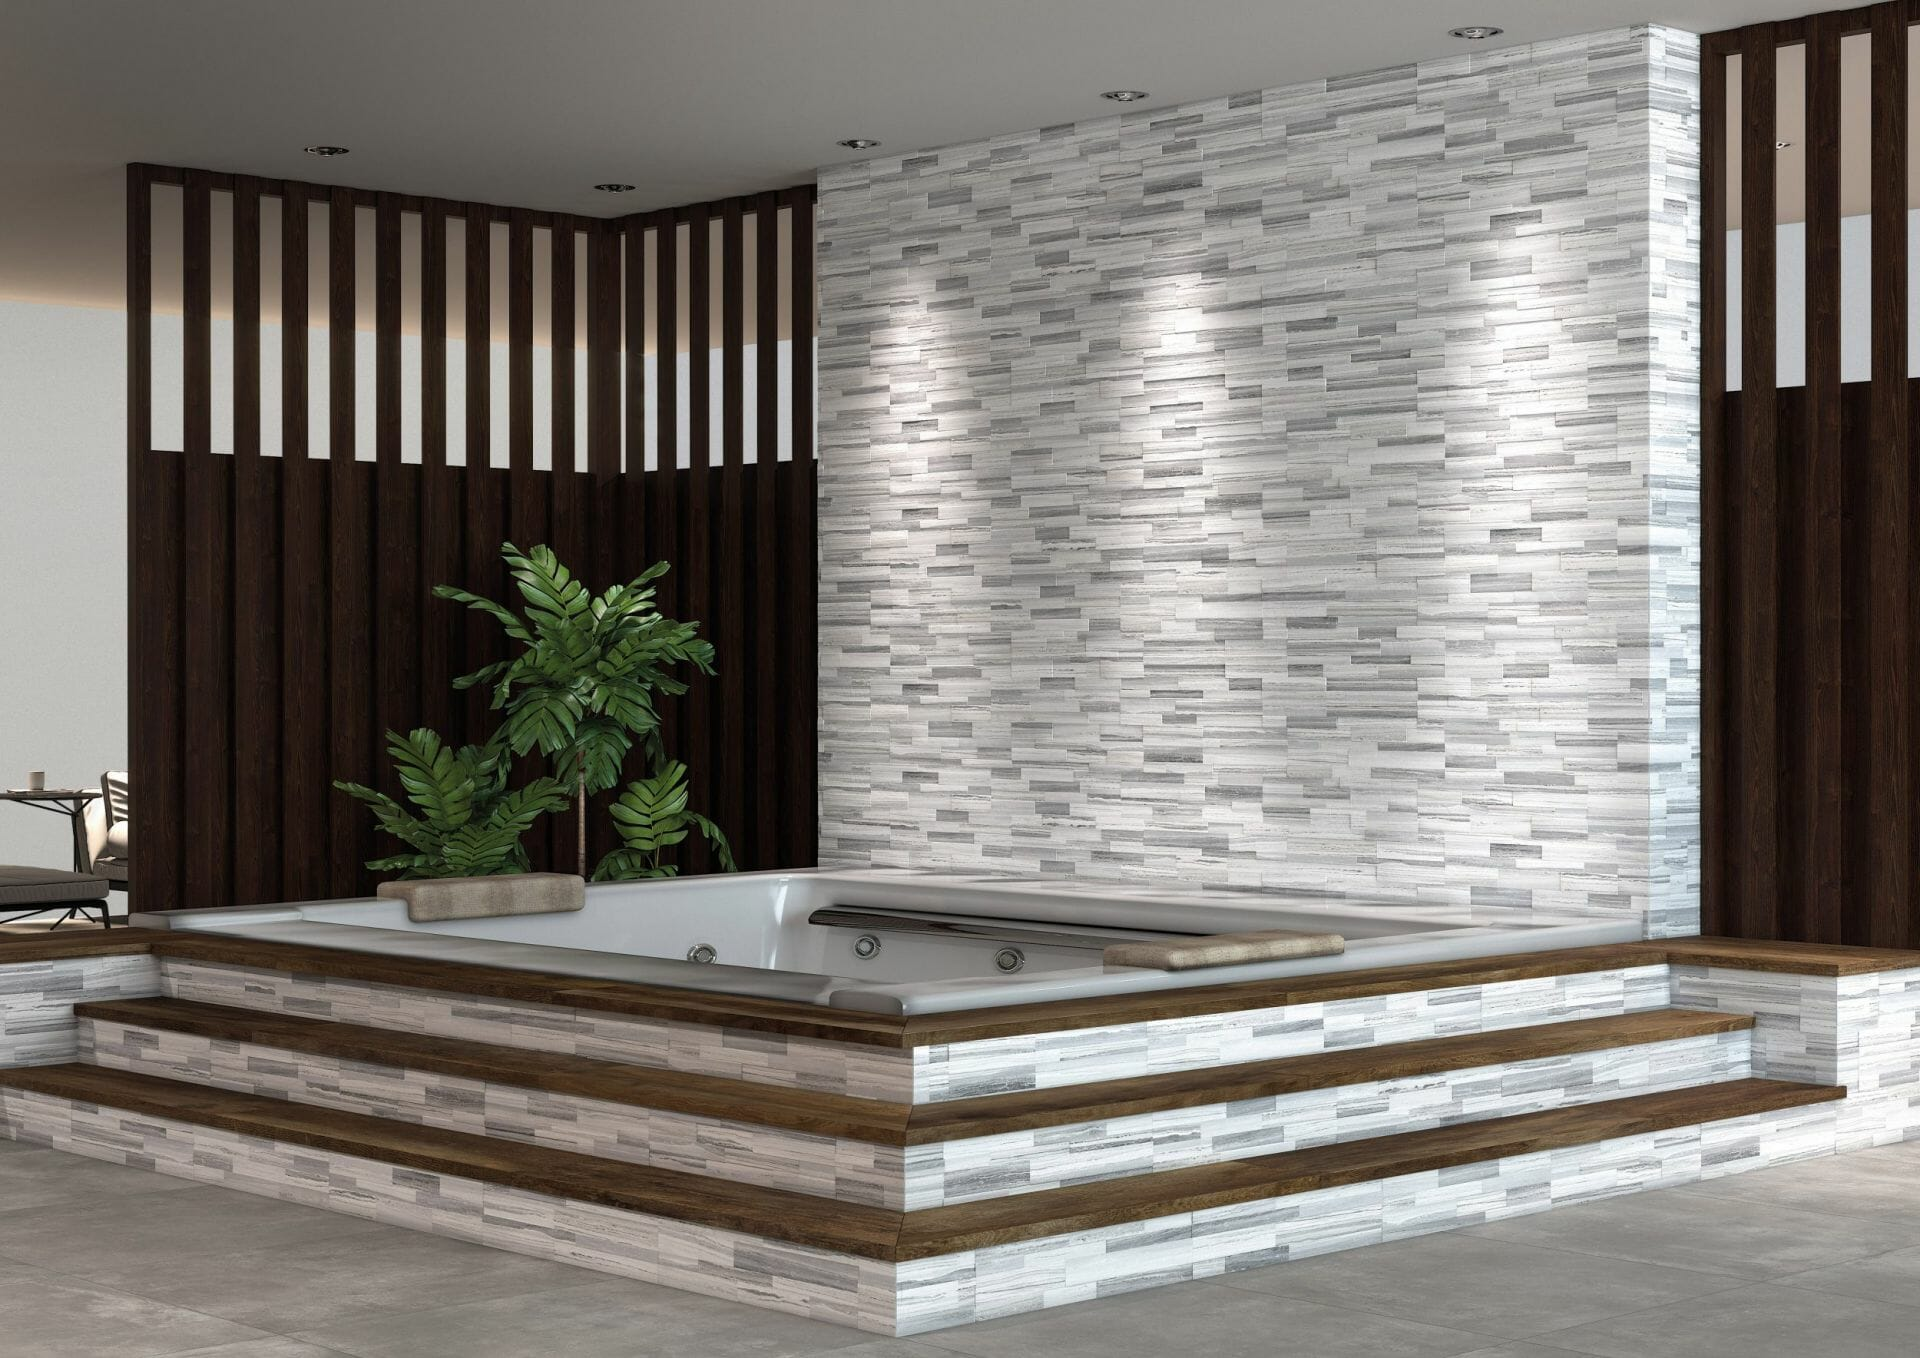 buy-latest-tiles-online-discounted-feature-wall